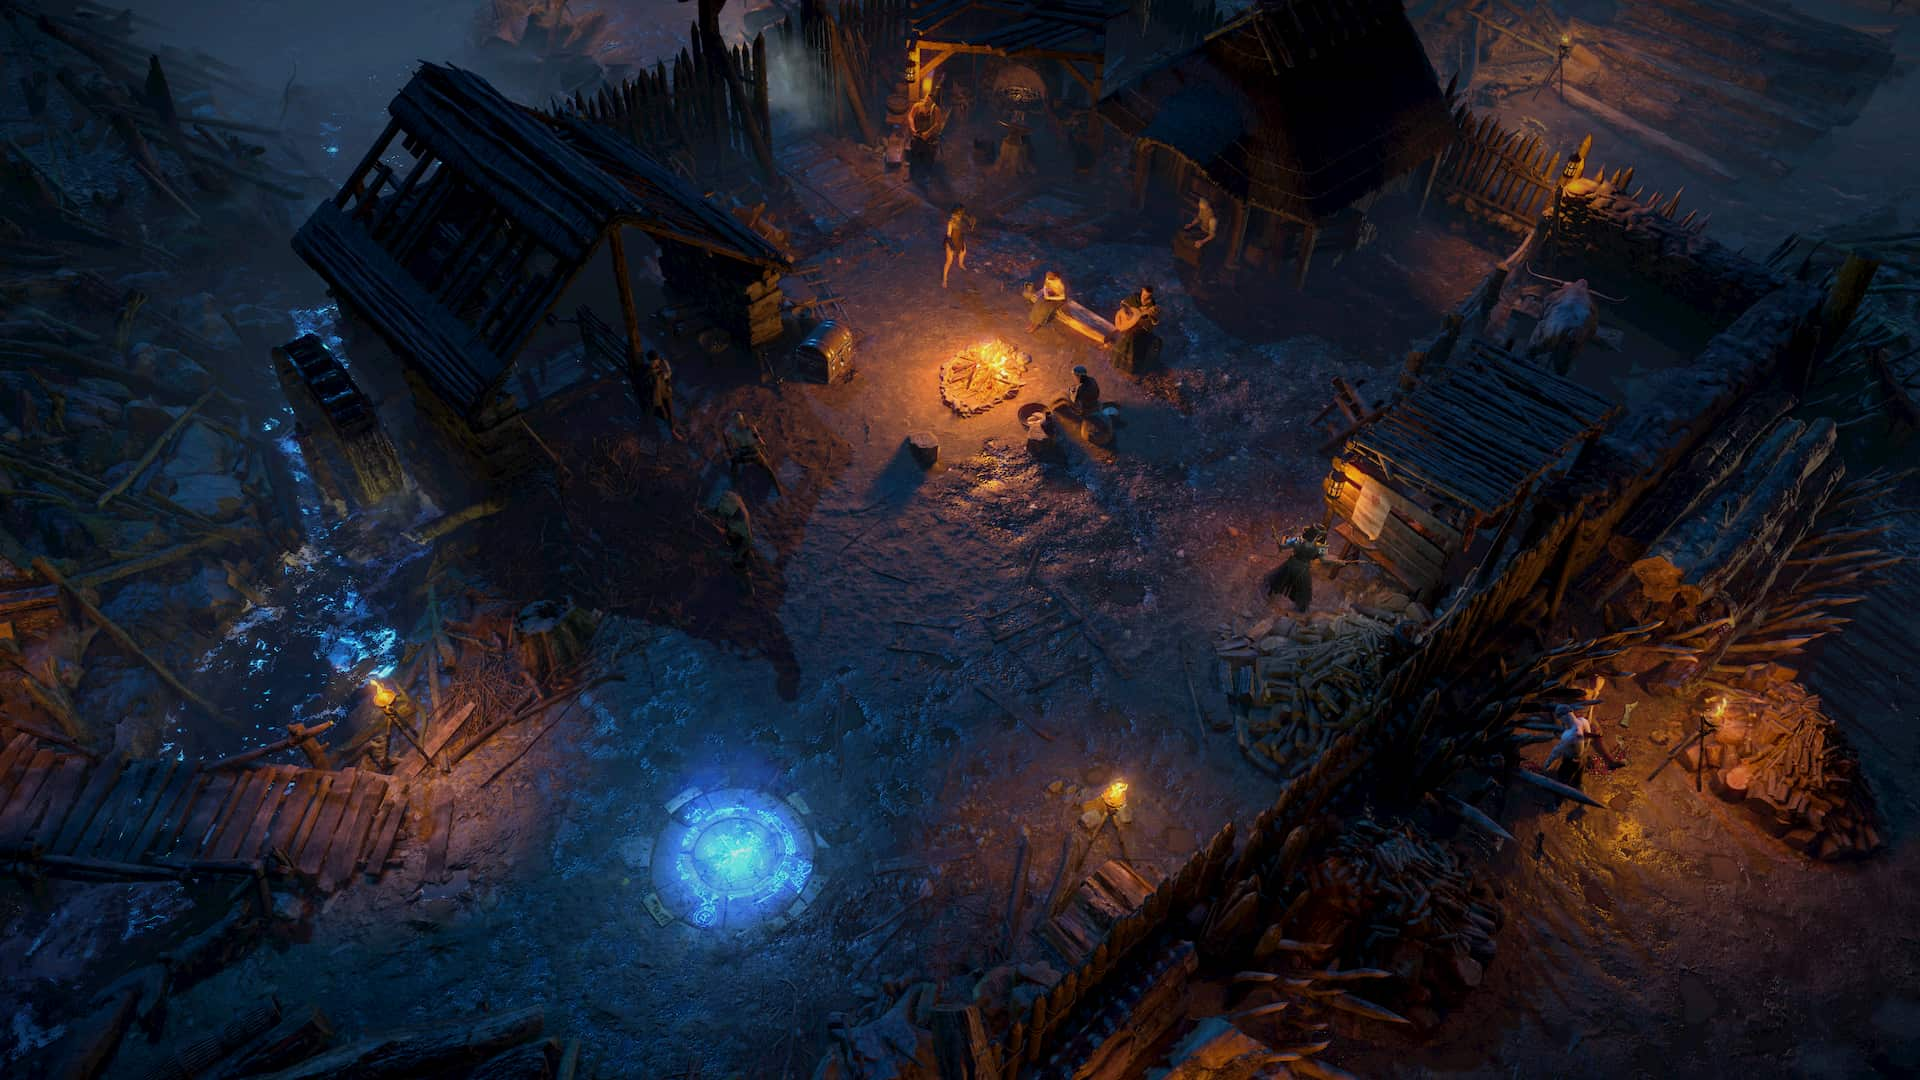 Anunciado Path of Exile 2, primer tráiler y gameplay de puro action RPG 6